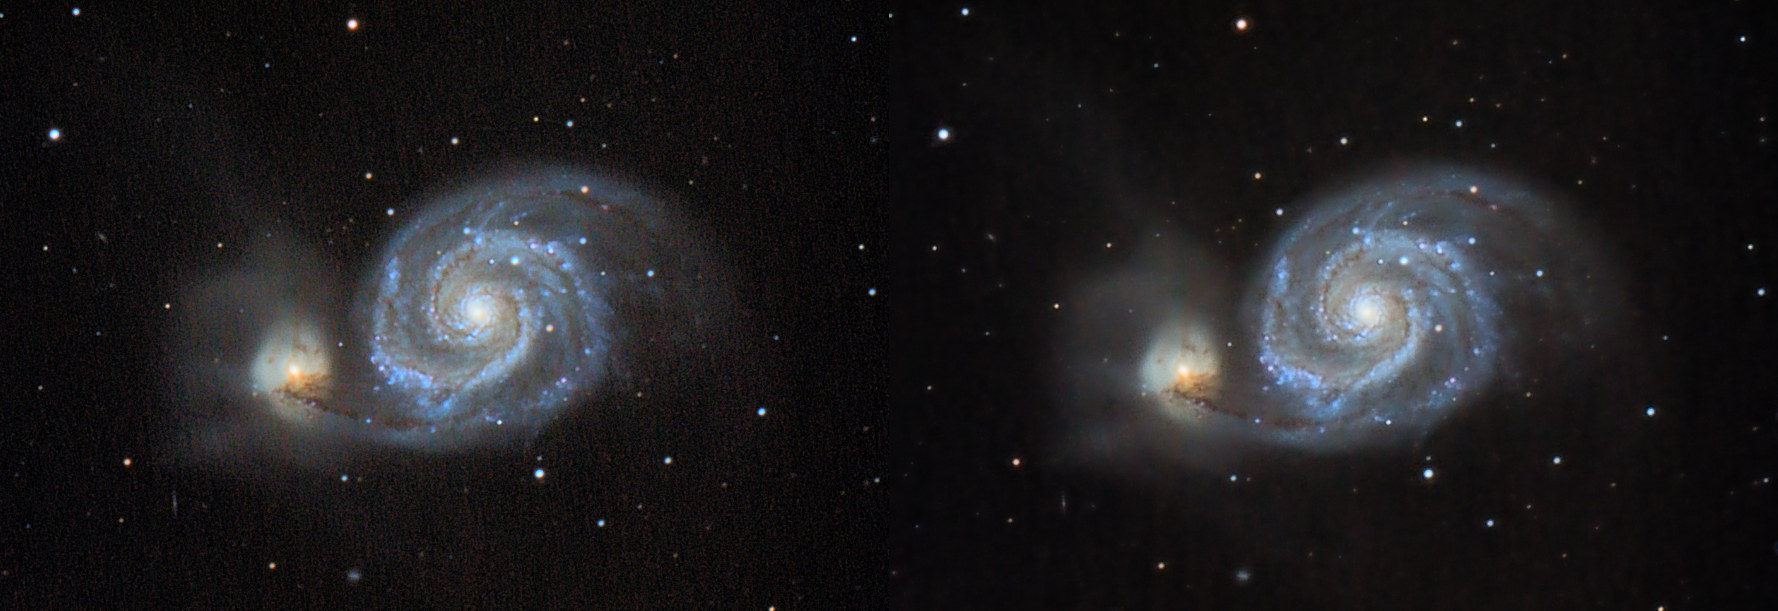 A 2-panle side-by-side of an image with walking noise (streaks) and a denoised image.